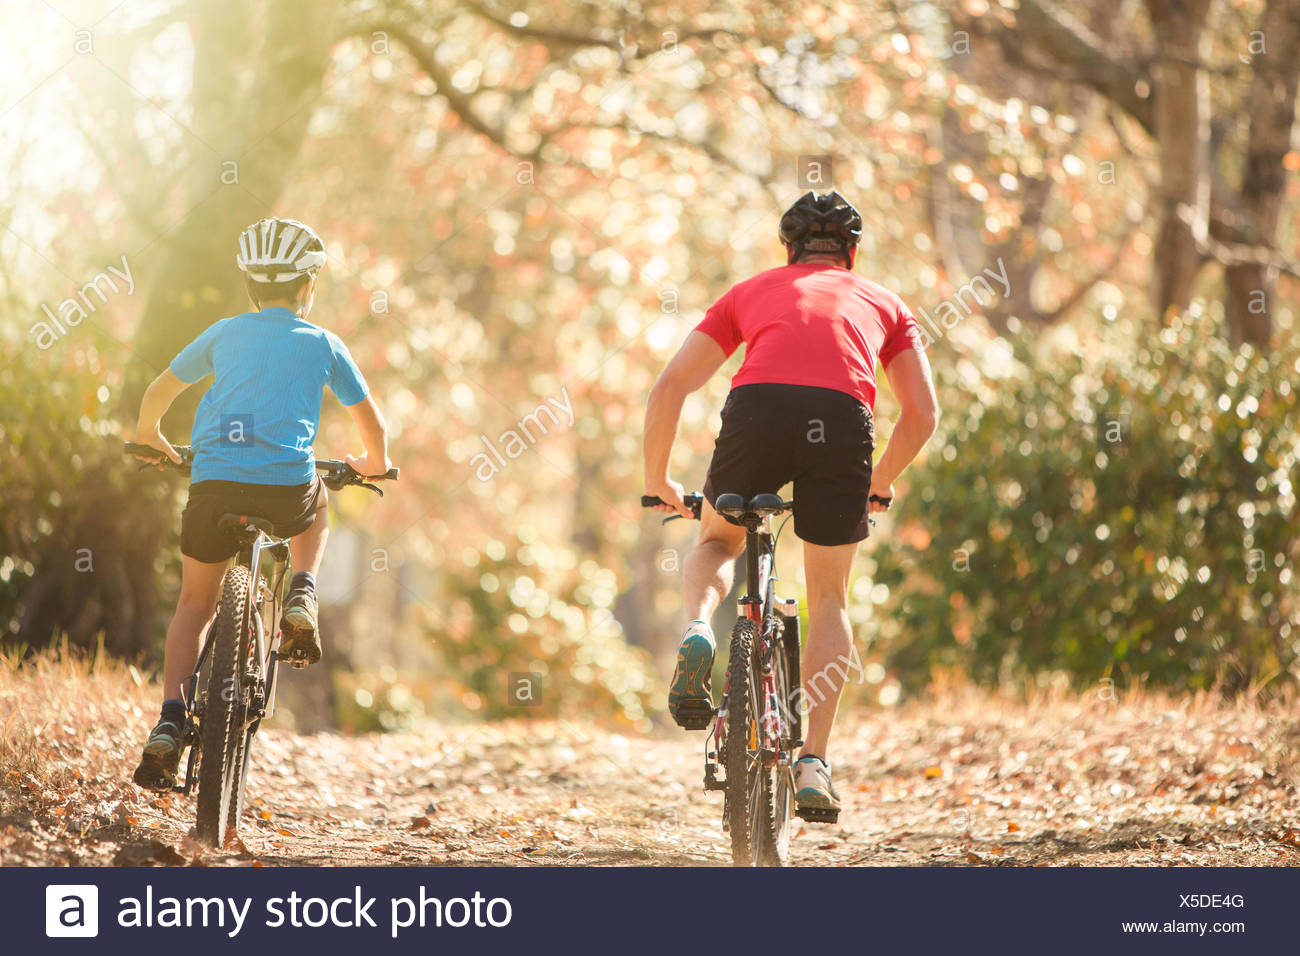 Father and son mountain biking on path in woods - Stock Image